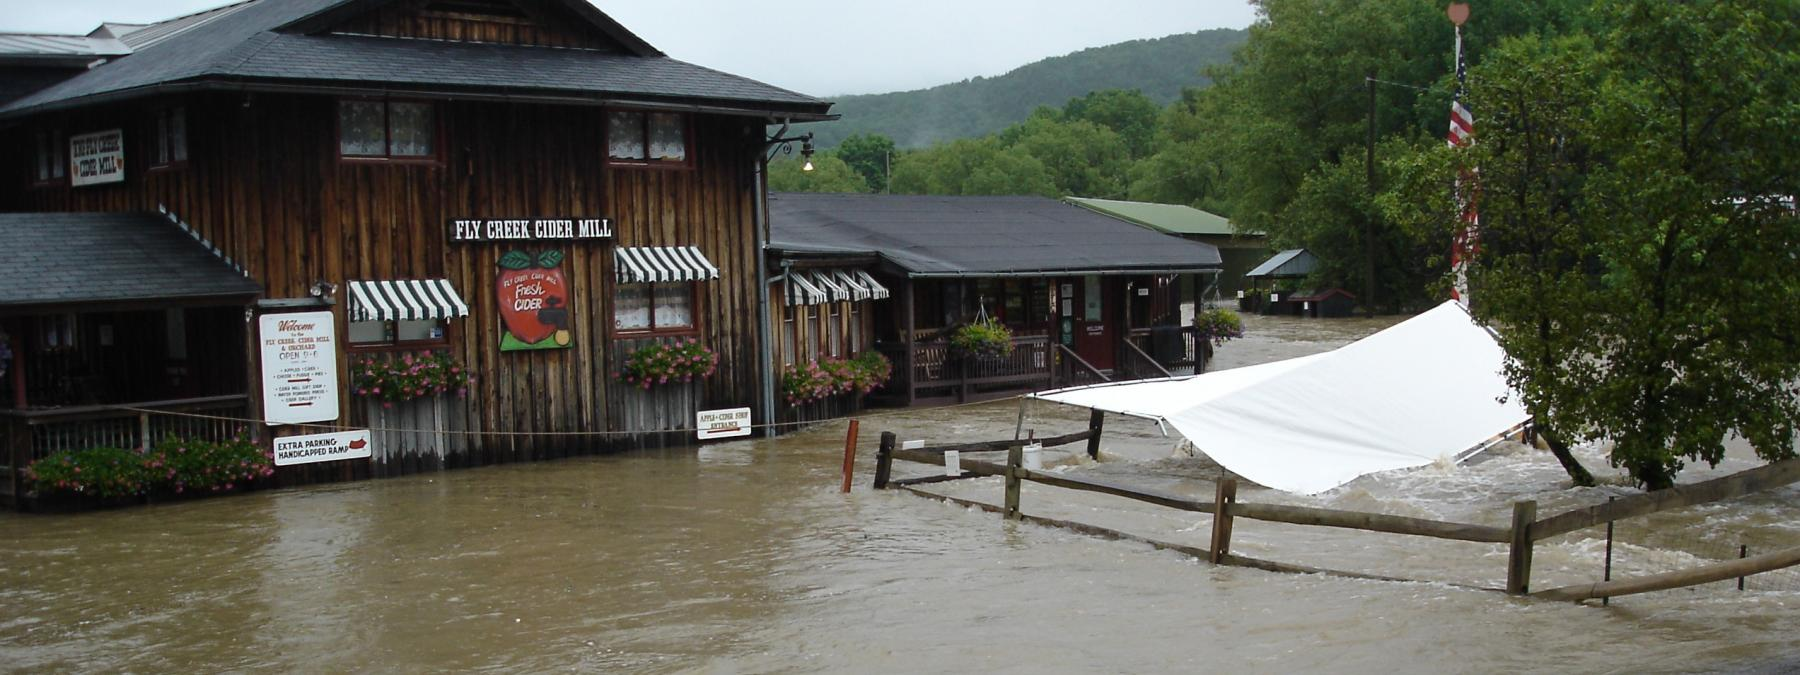 2006 The Great Flood